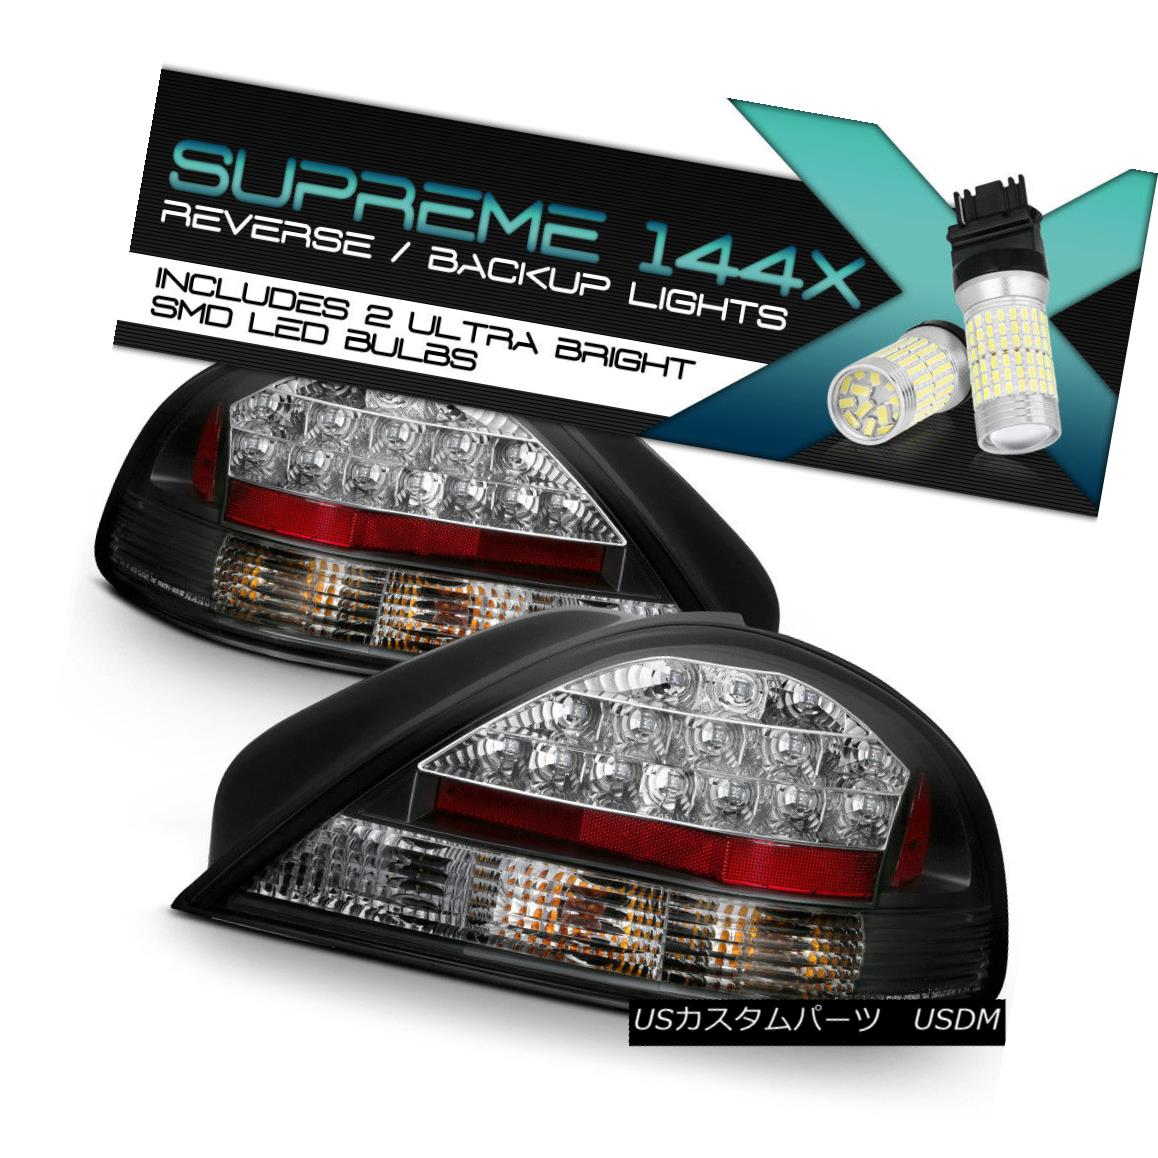 テールライト !360 DEGREE SMD REVERSE! LED Taillight 1999-2005 Pontiac Grand Am SE1/GT/SE2/GT1 360°SMD逆転! LEDテールライト1999-2005ポンティアック・グランド・アムSE1 / GT / SE2 / GT1